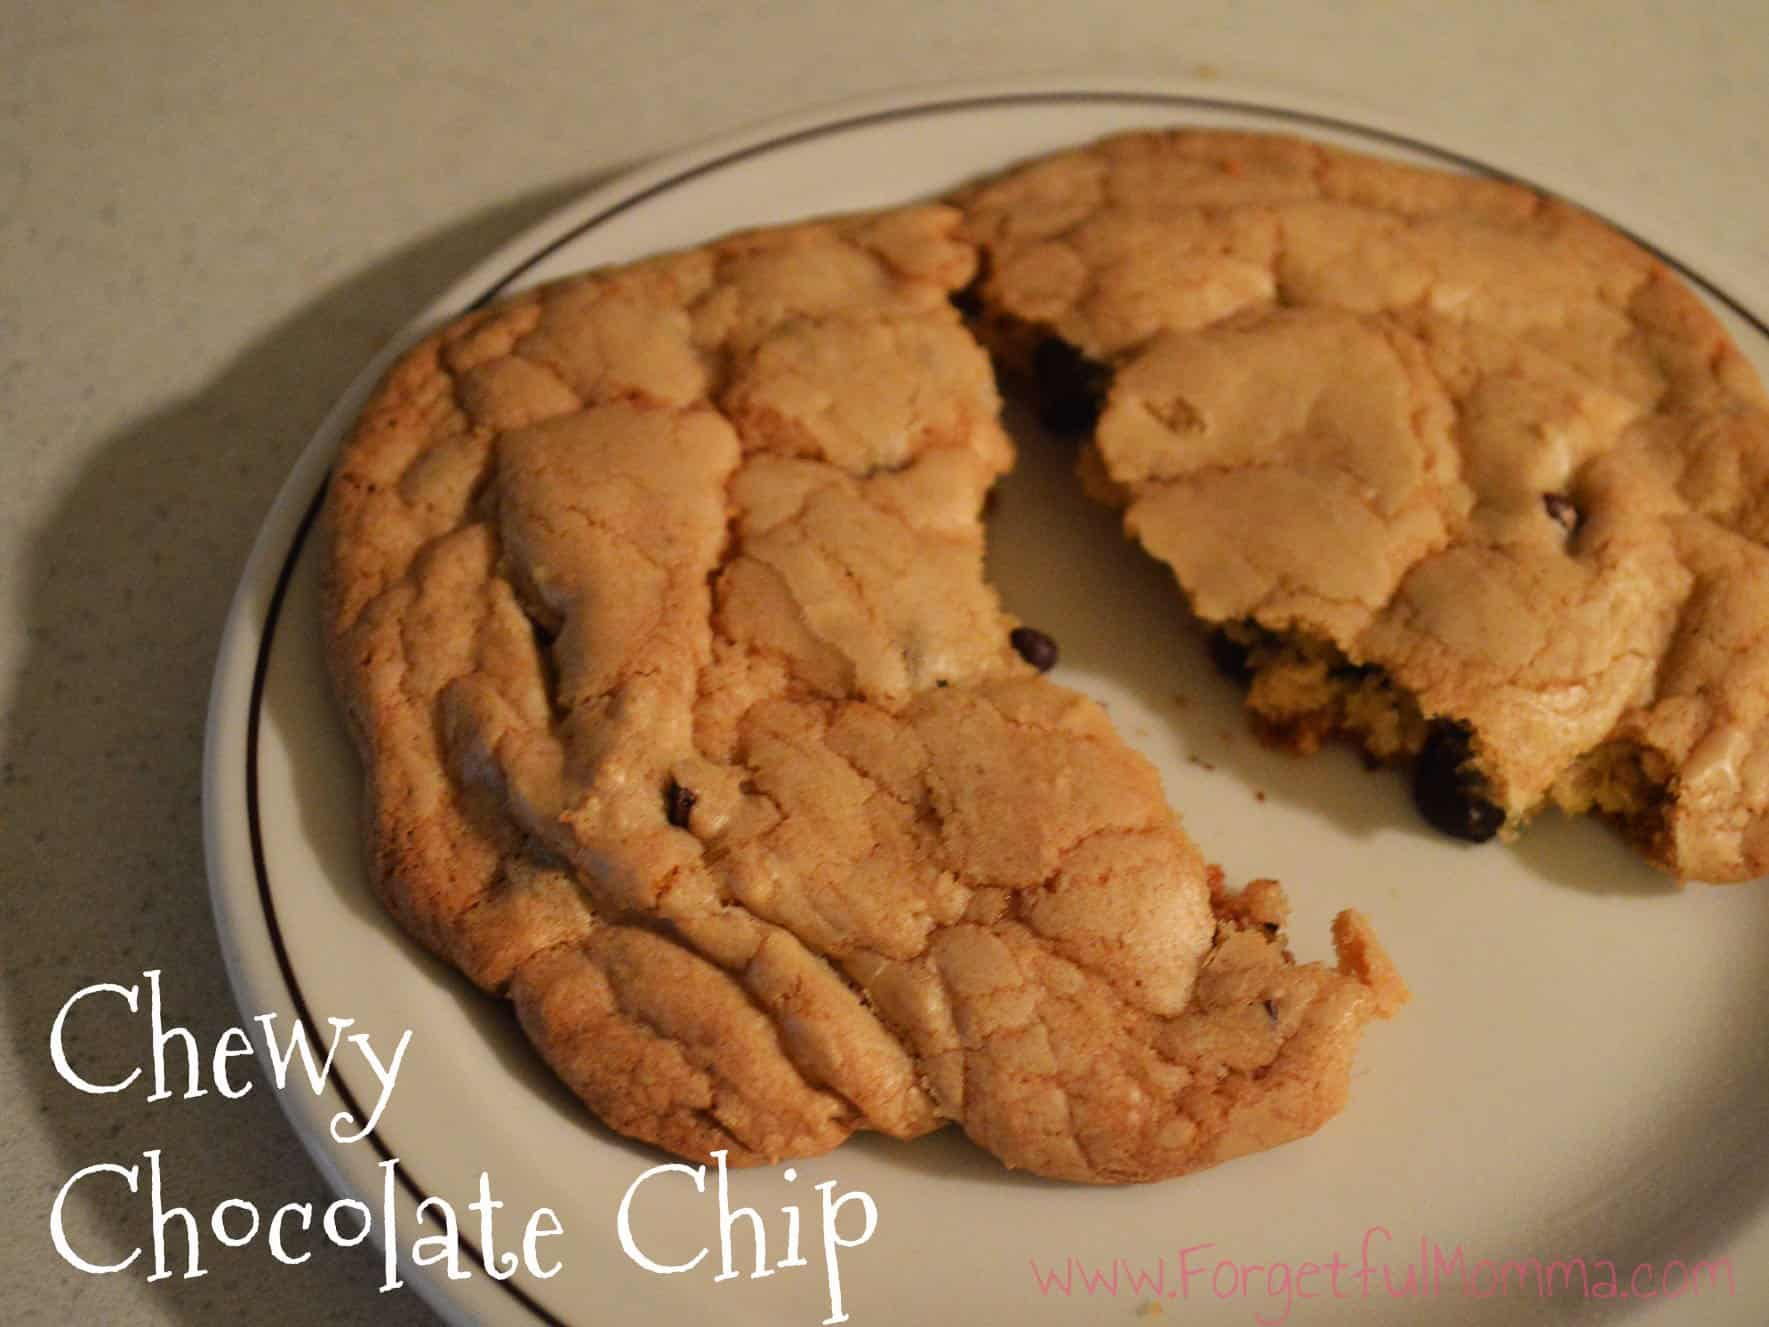 Chewy, Chocolate Chip Cookies